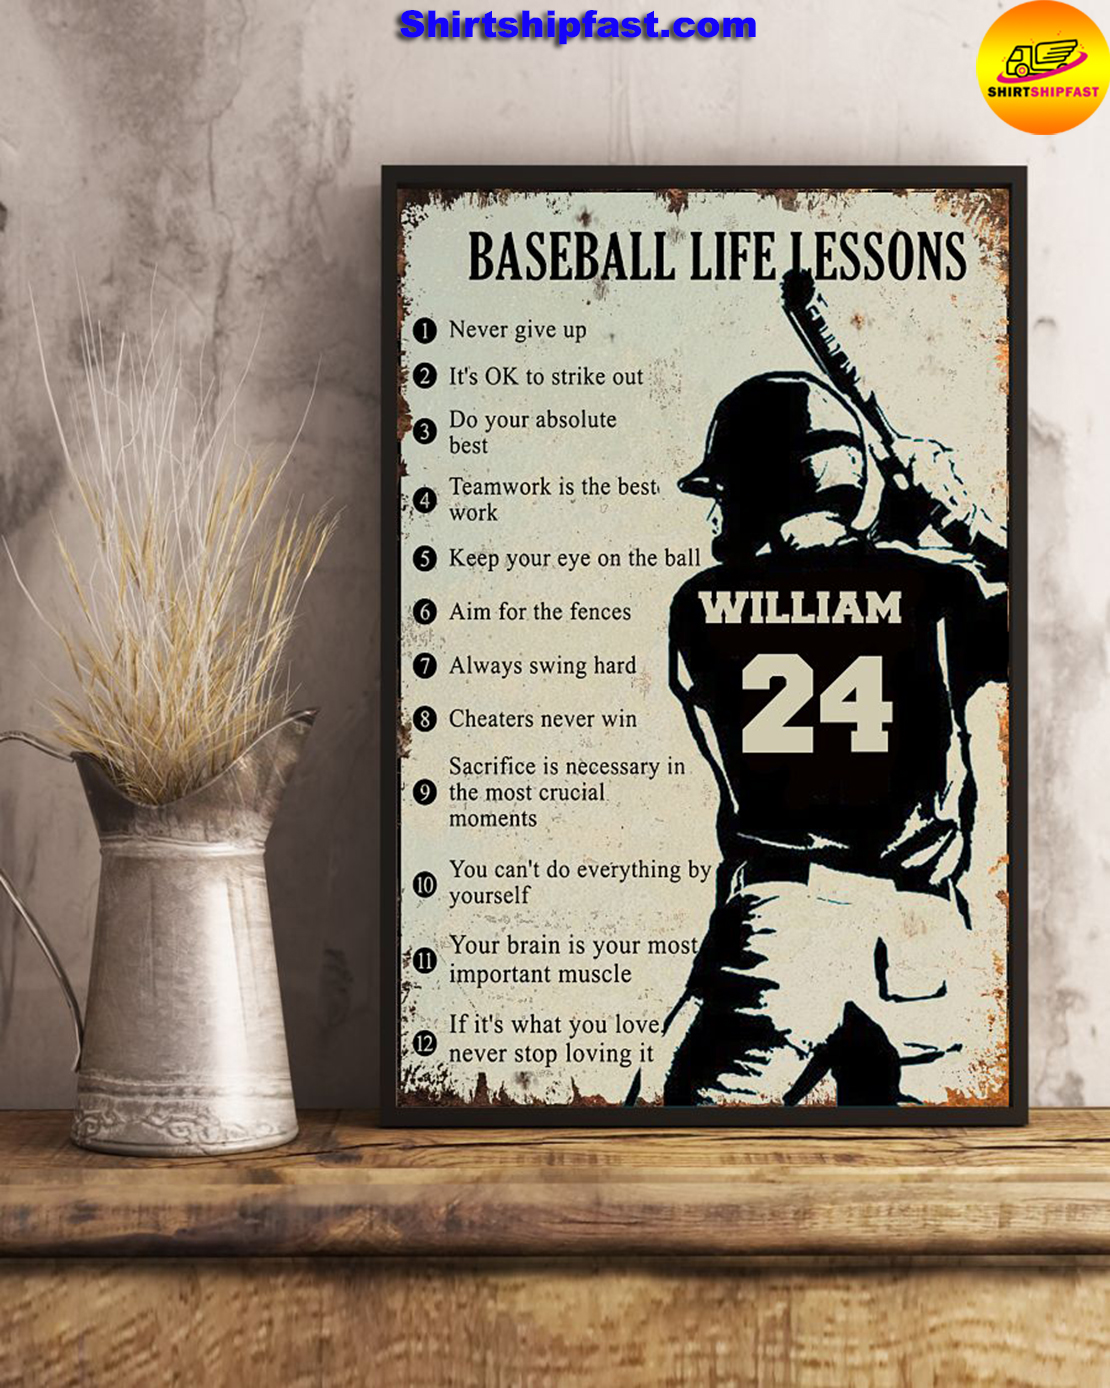 Personalize custom name number Baseball life lessons poster - Picture 2